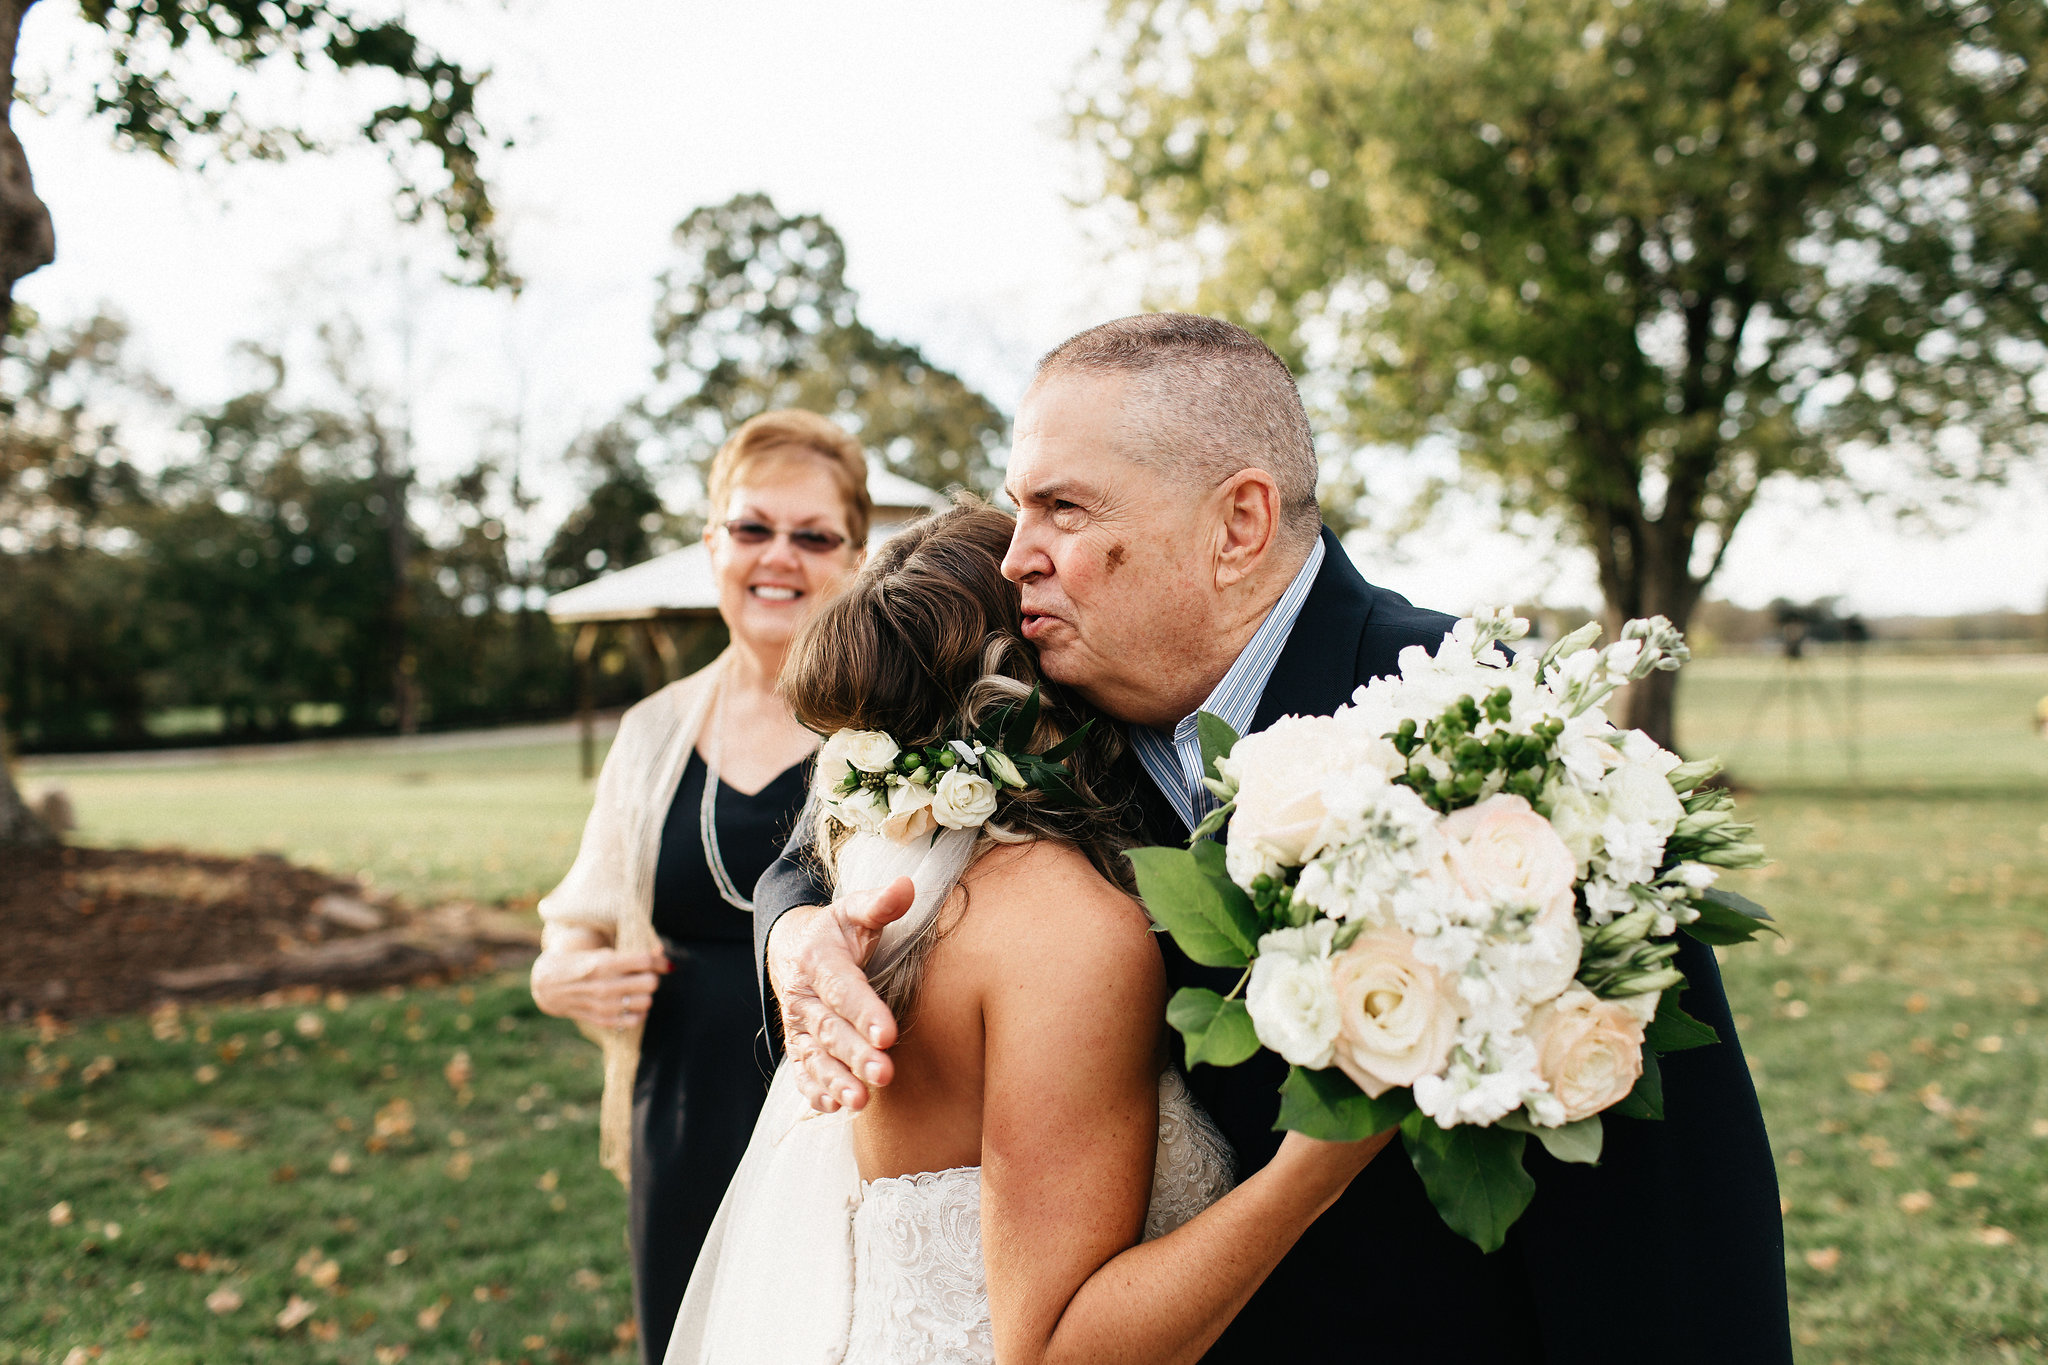 Ashley&NathanMarried2017-11-10at19.26.54PM71.jpg